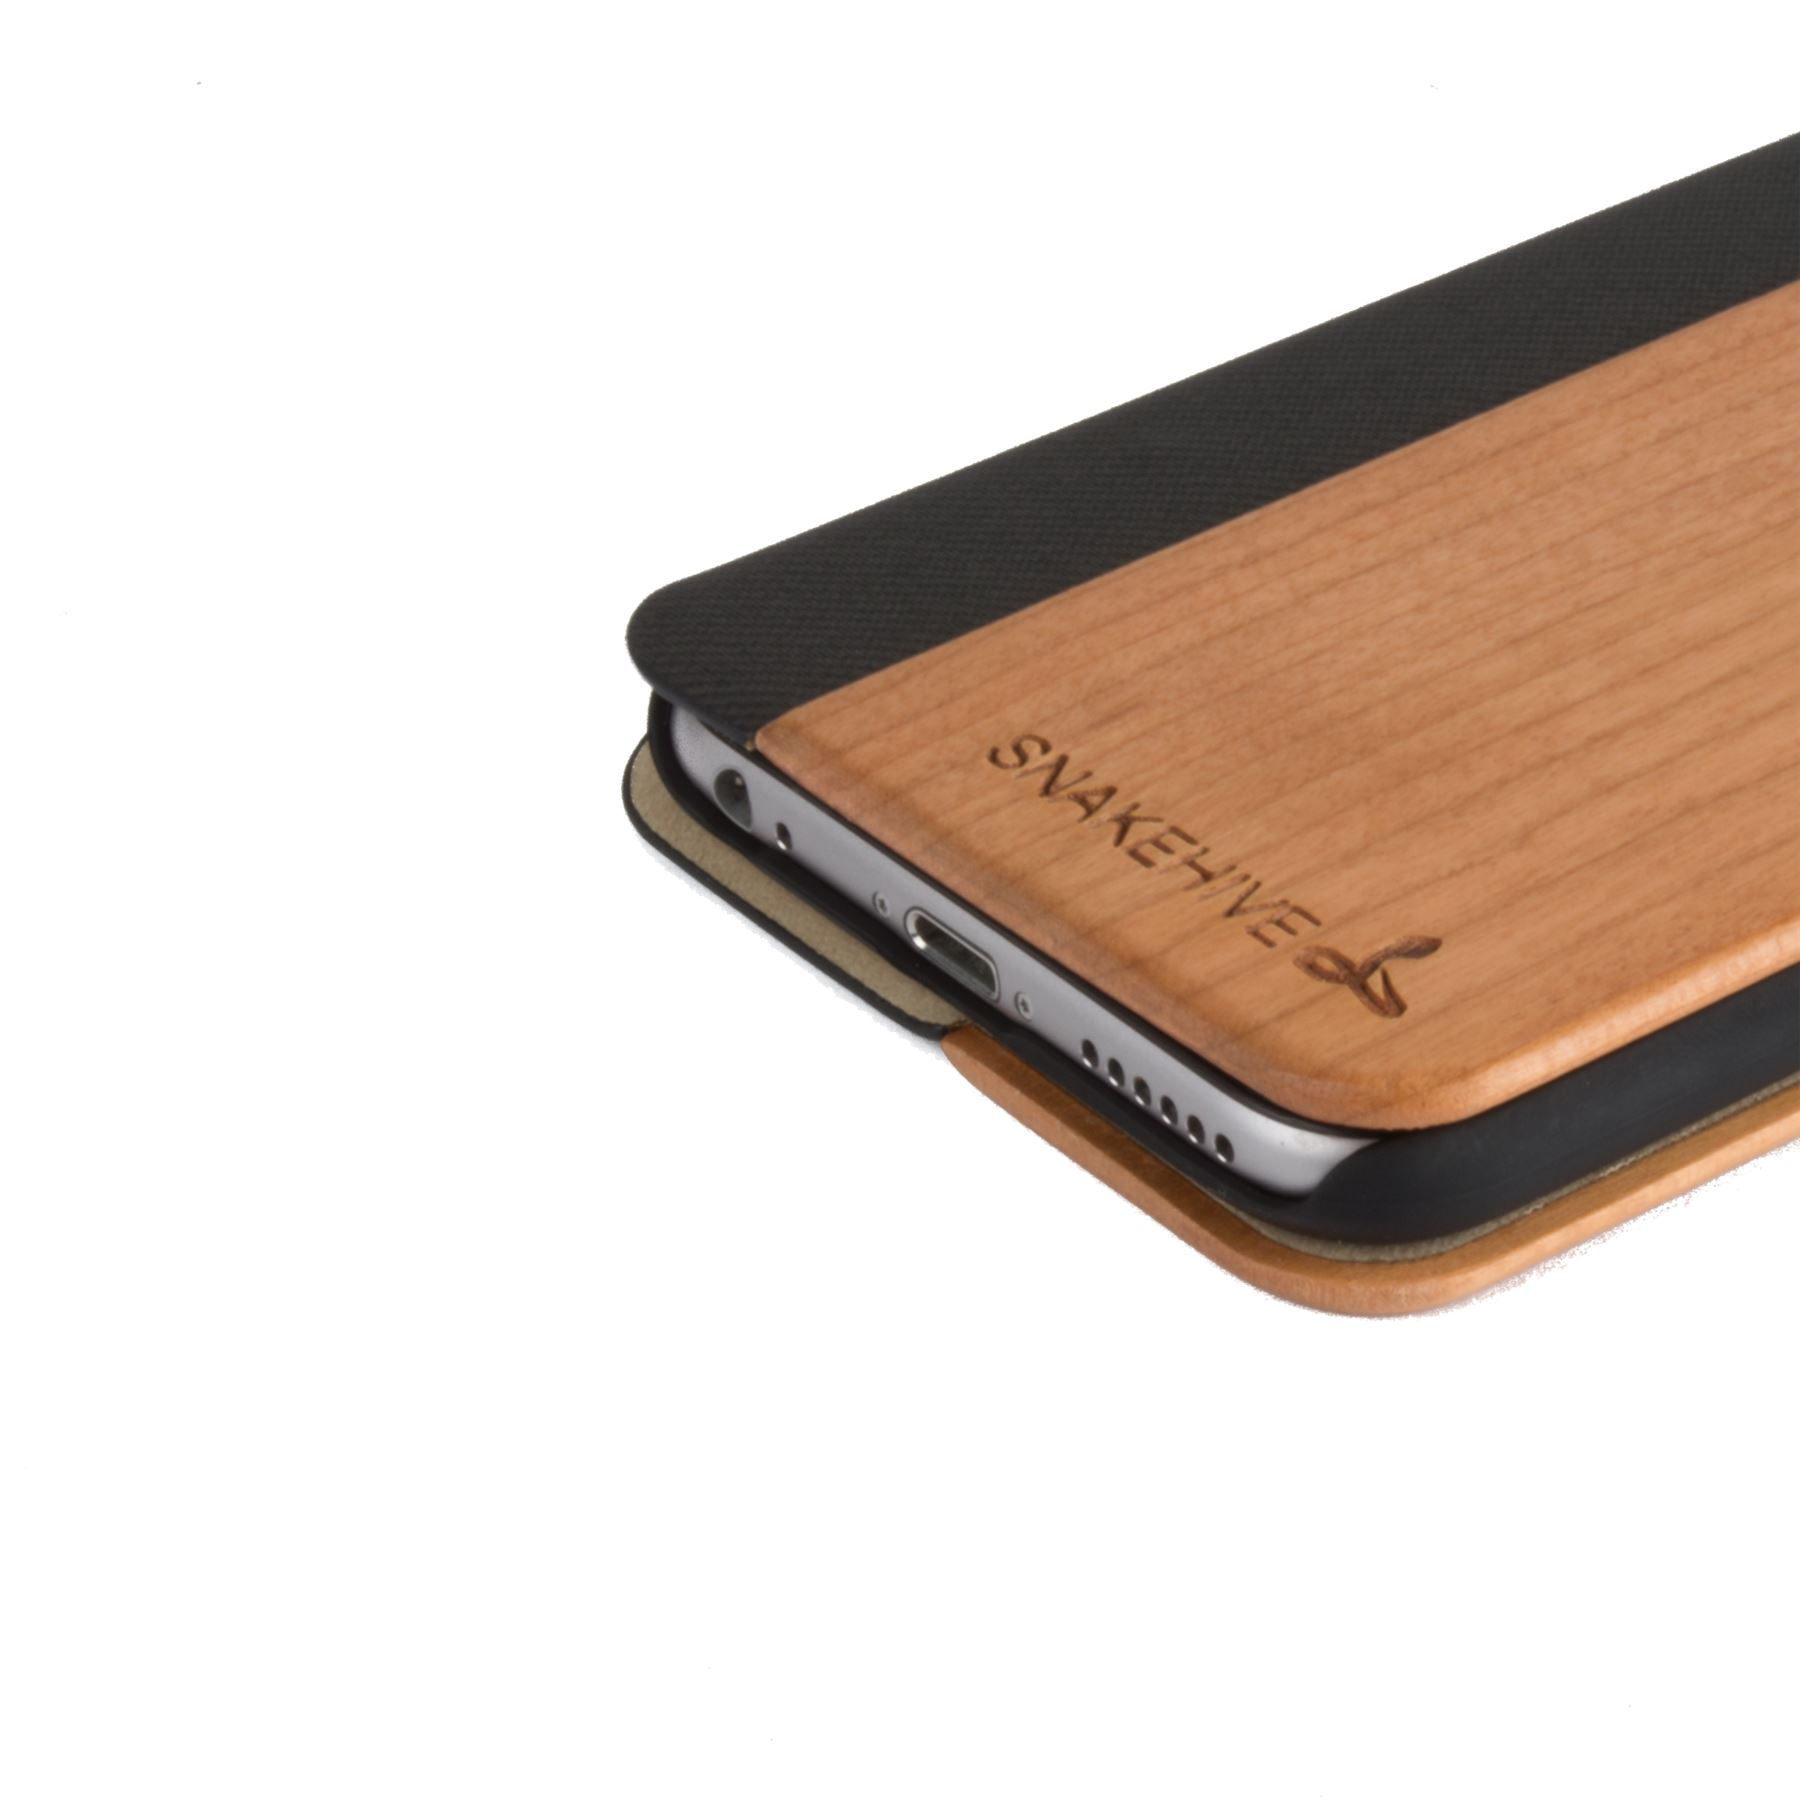 info for 7b49e 18371 Details about Snakehive® Apple iPhone 6/6s Natural Wood & Leather Phone  Folio Wallet Case